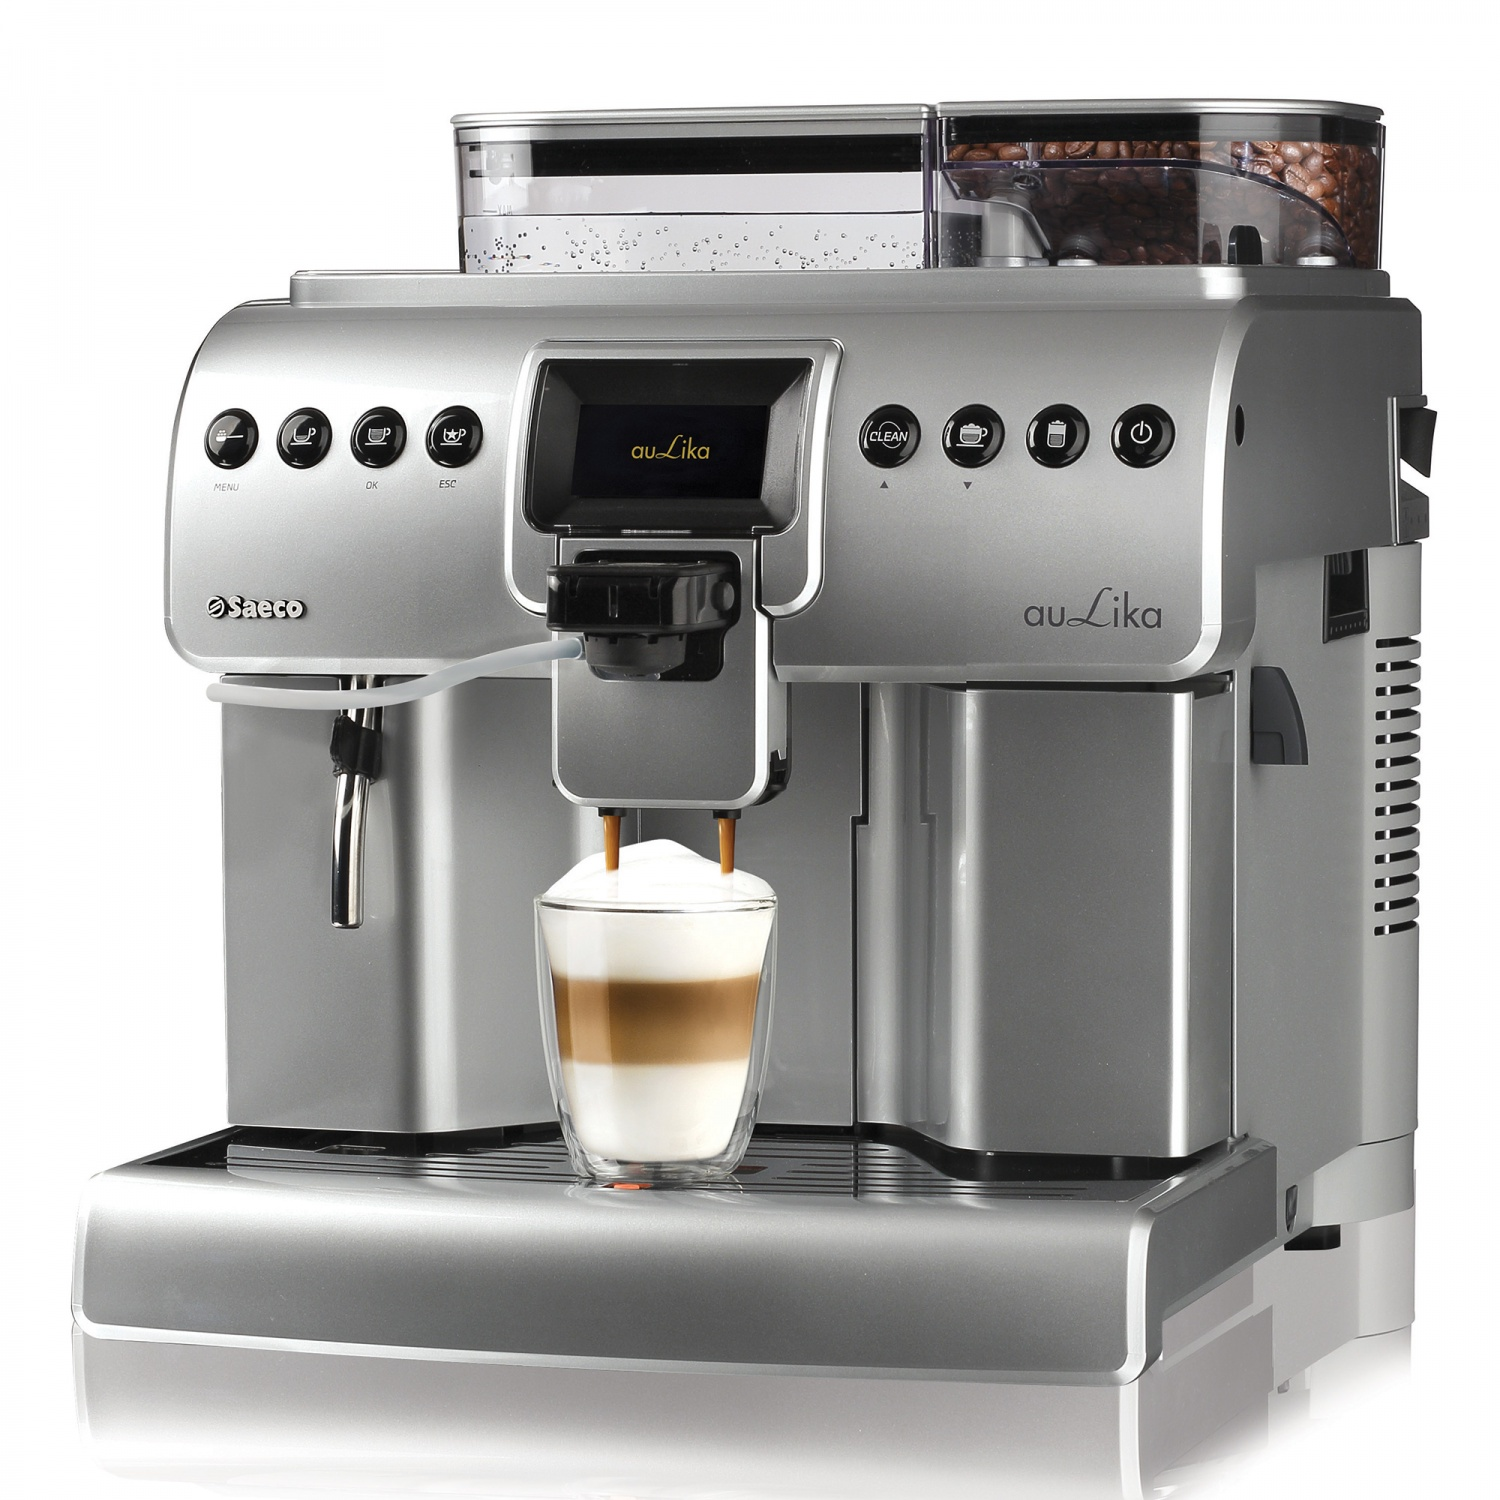 Automatic Coffee Machine Saeco Aulika Focus